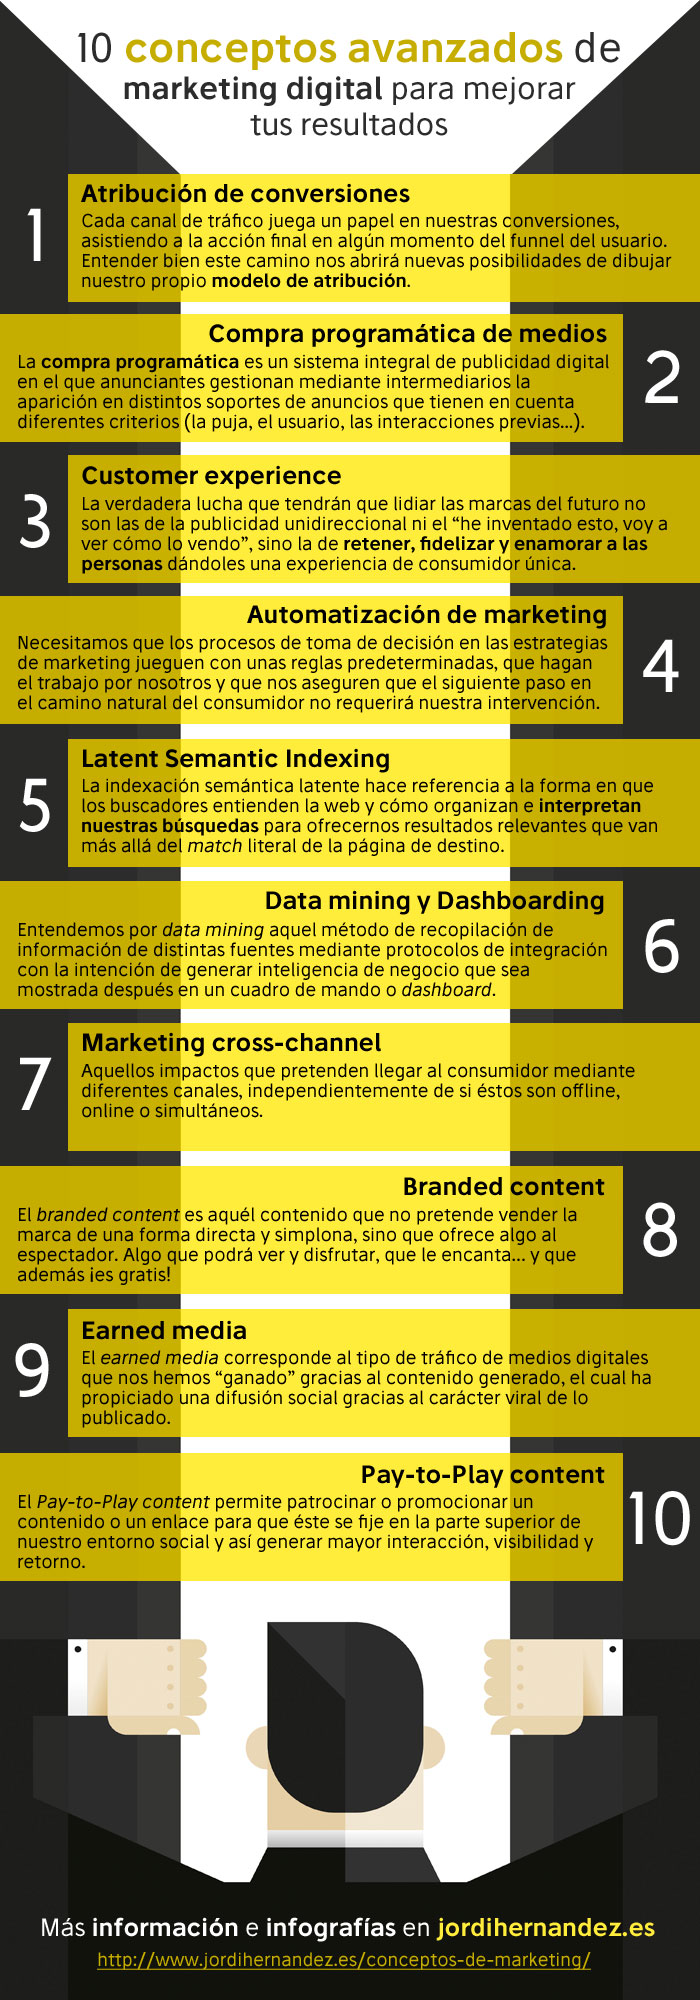 10 conceptos avanzados de Marketing Digital